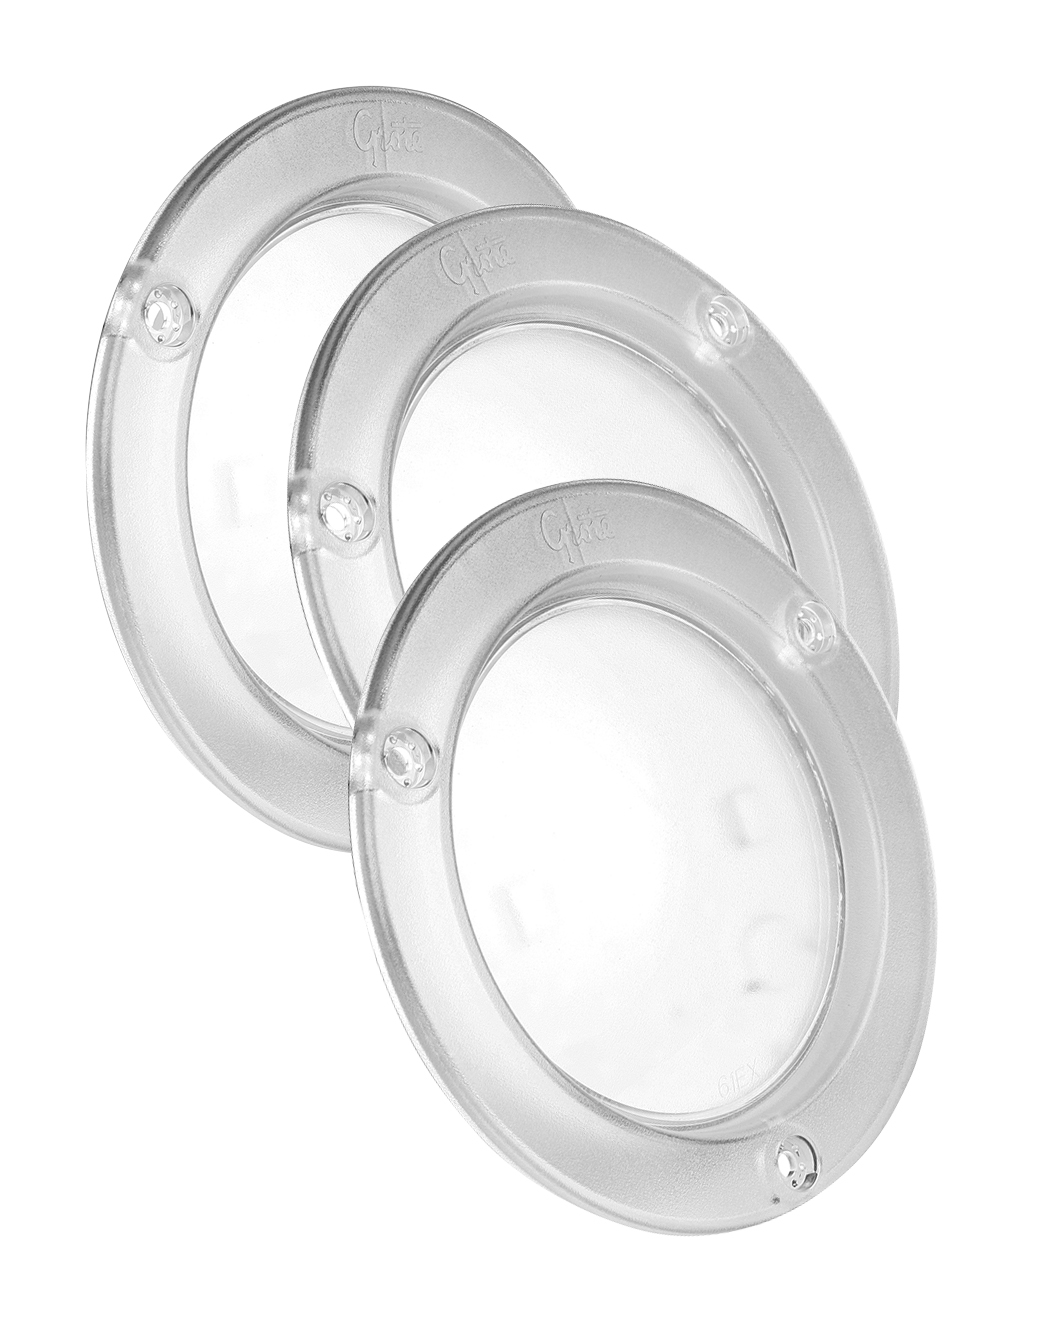 61E01-3 – LED WhiteLight™ 4″ Dome Light, Integrated Flange, Male Pin, 12V, Clear, Bulk Pack